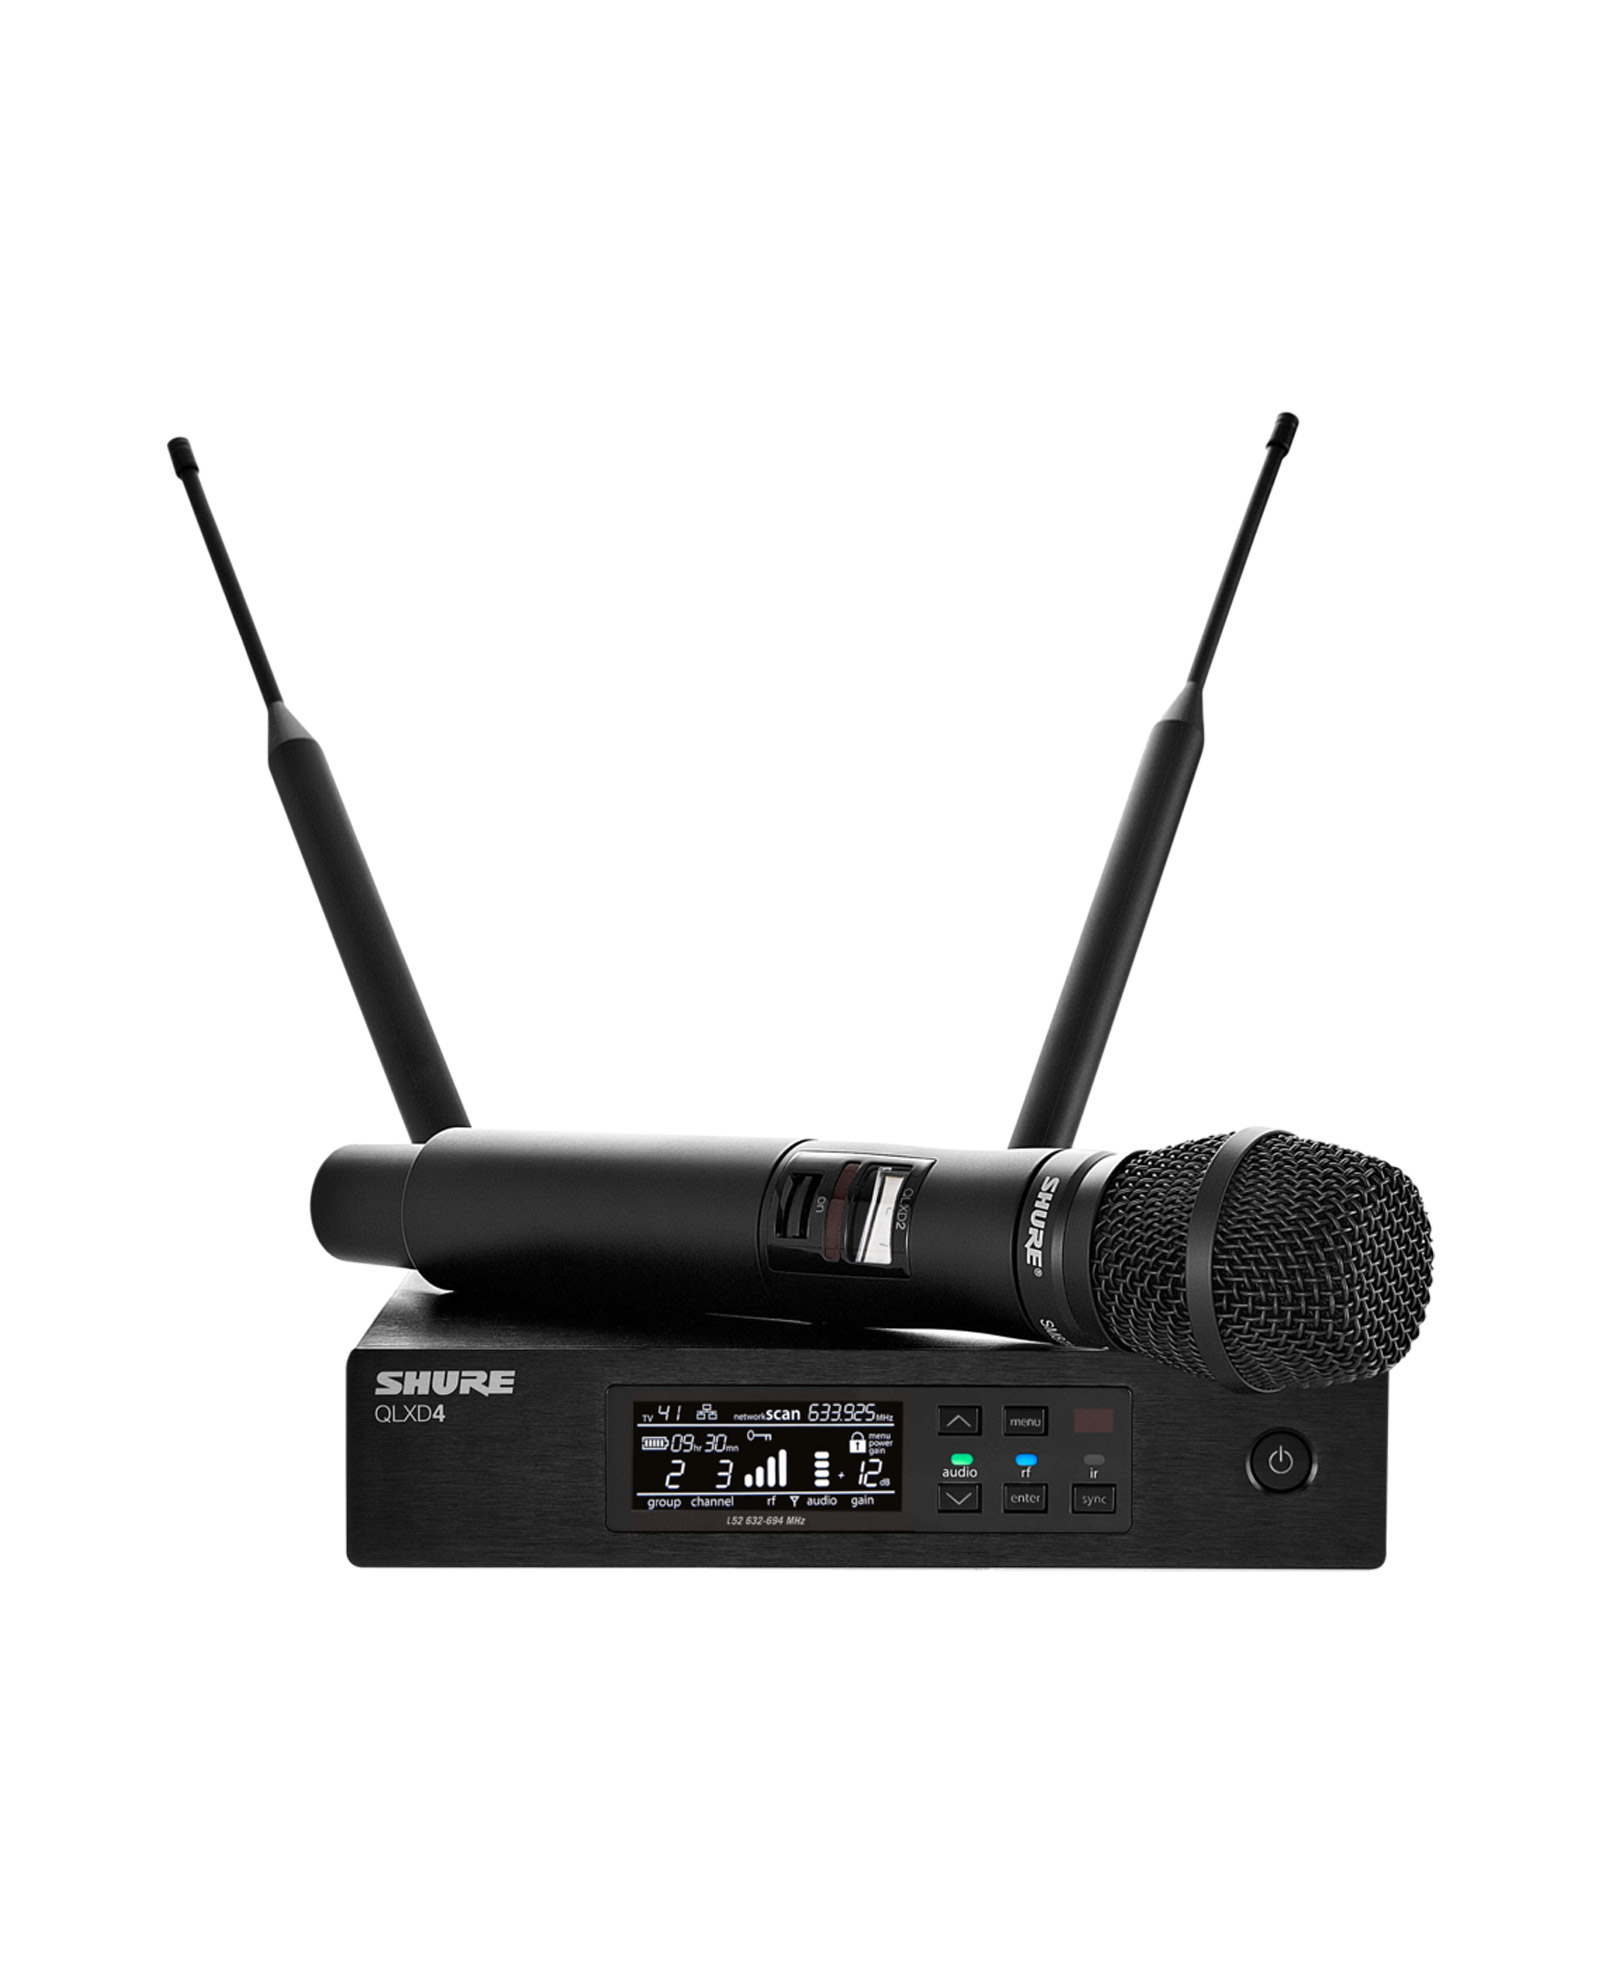 Shure Qlxd2 Sm87 Handheld Transmitter With Sm87 Capsule 1